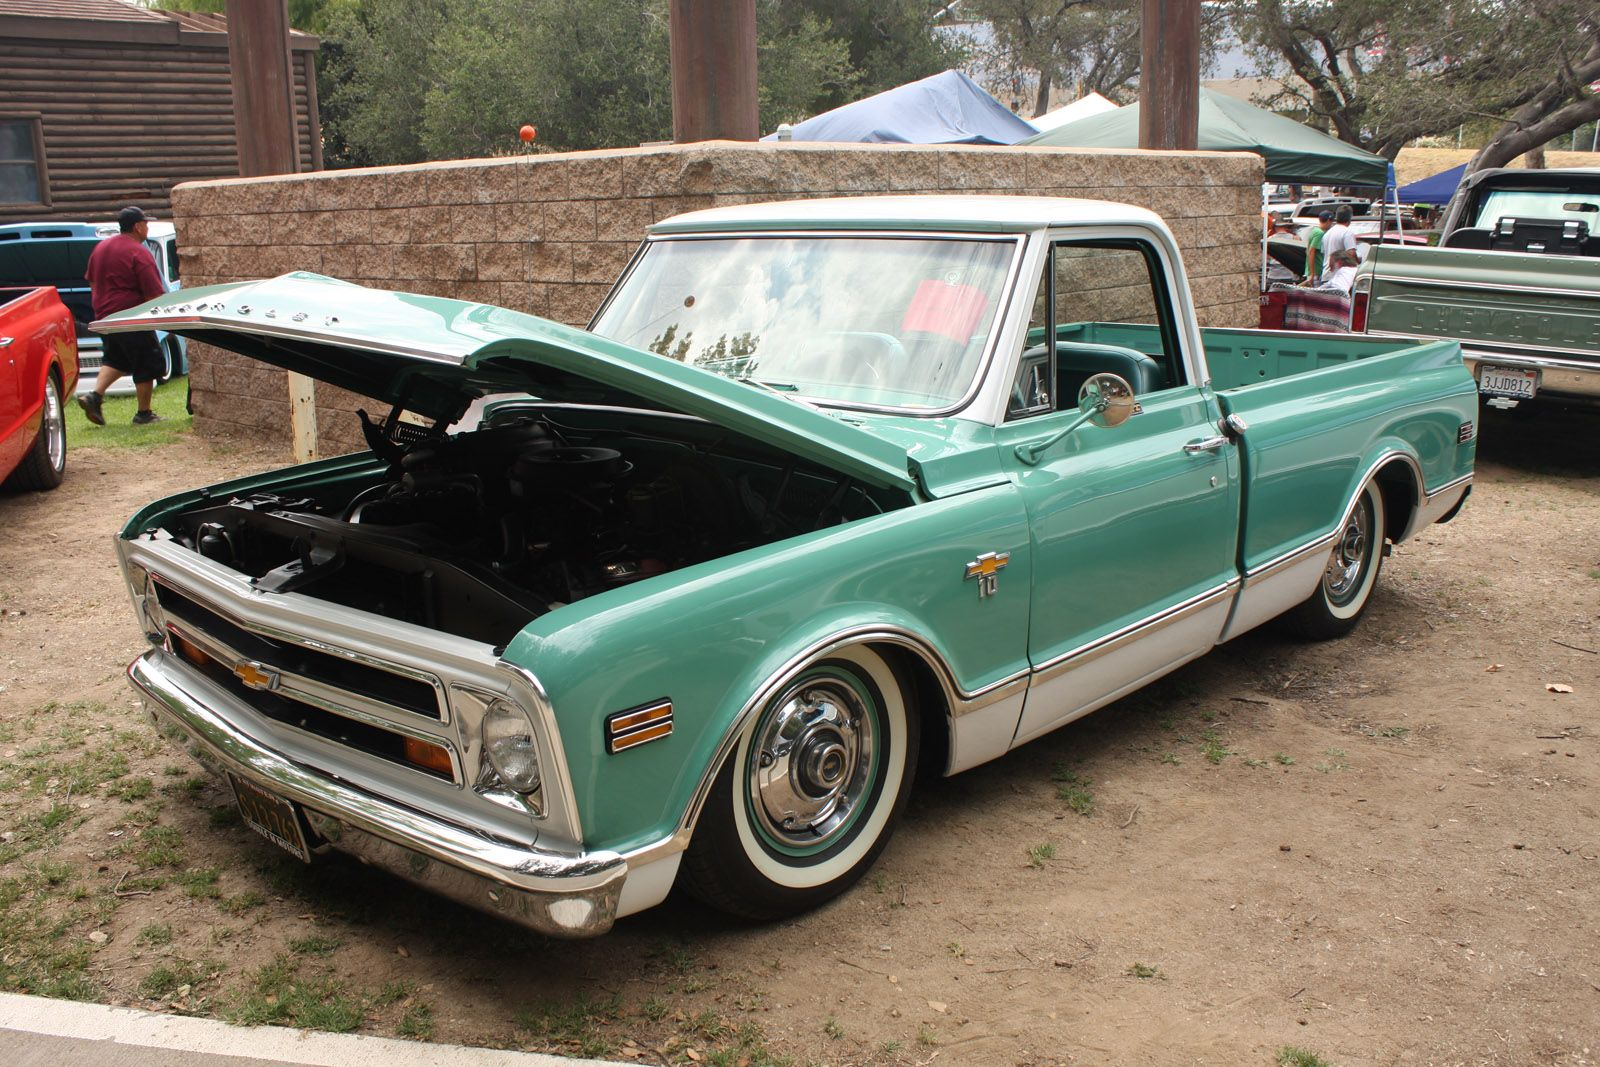 Truck 1968 chevrolet truck parts : 2013-brothers-15th-annual-chevy-gmc-truck-show-and-shine-23-1968 ...